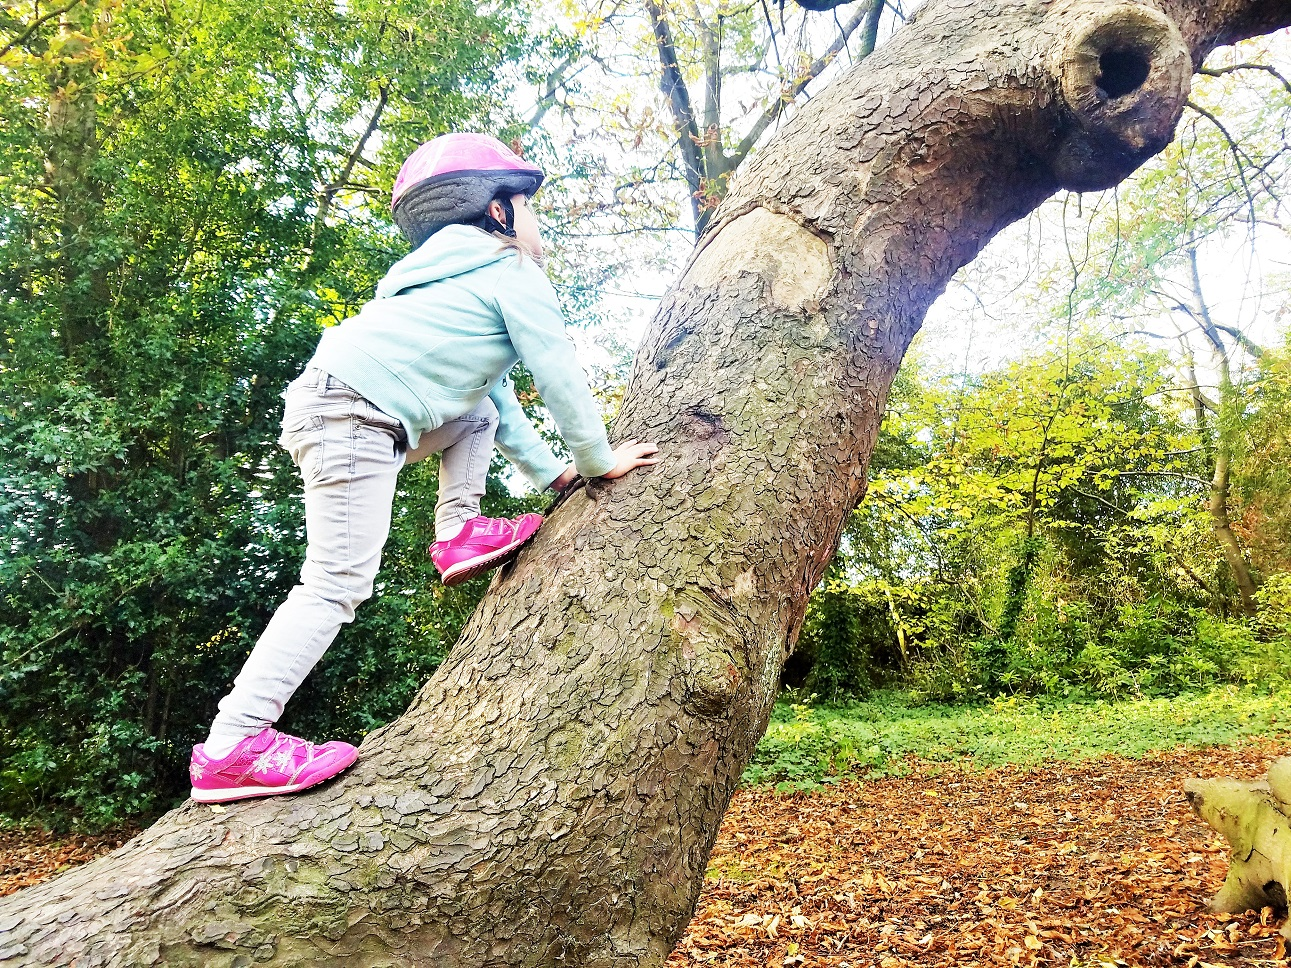 7 Ways You Should Be Treating Children Like Adults - child climbing tree